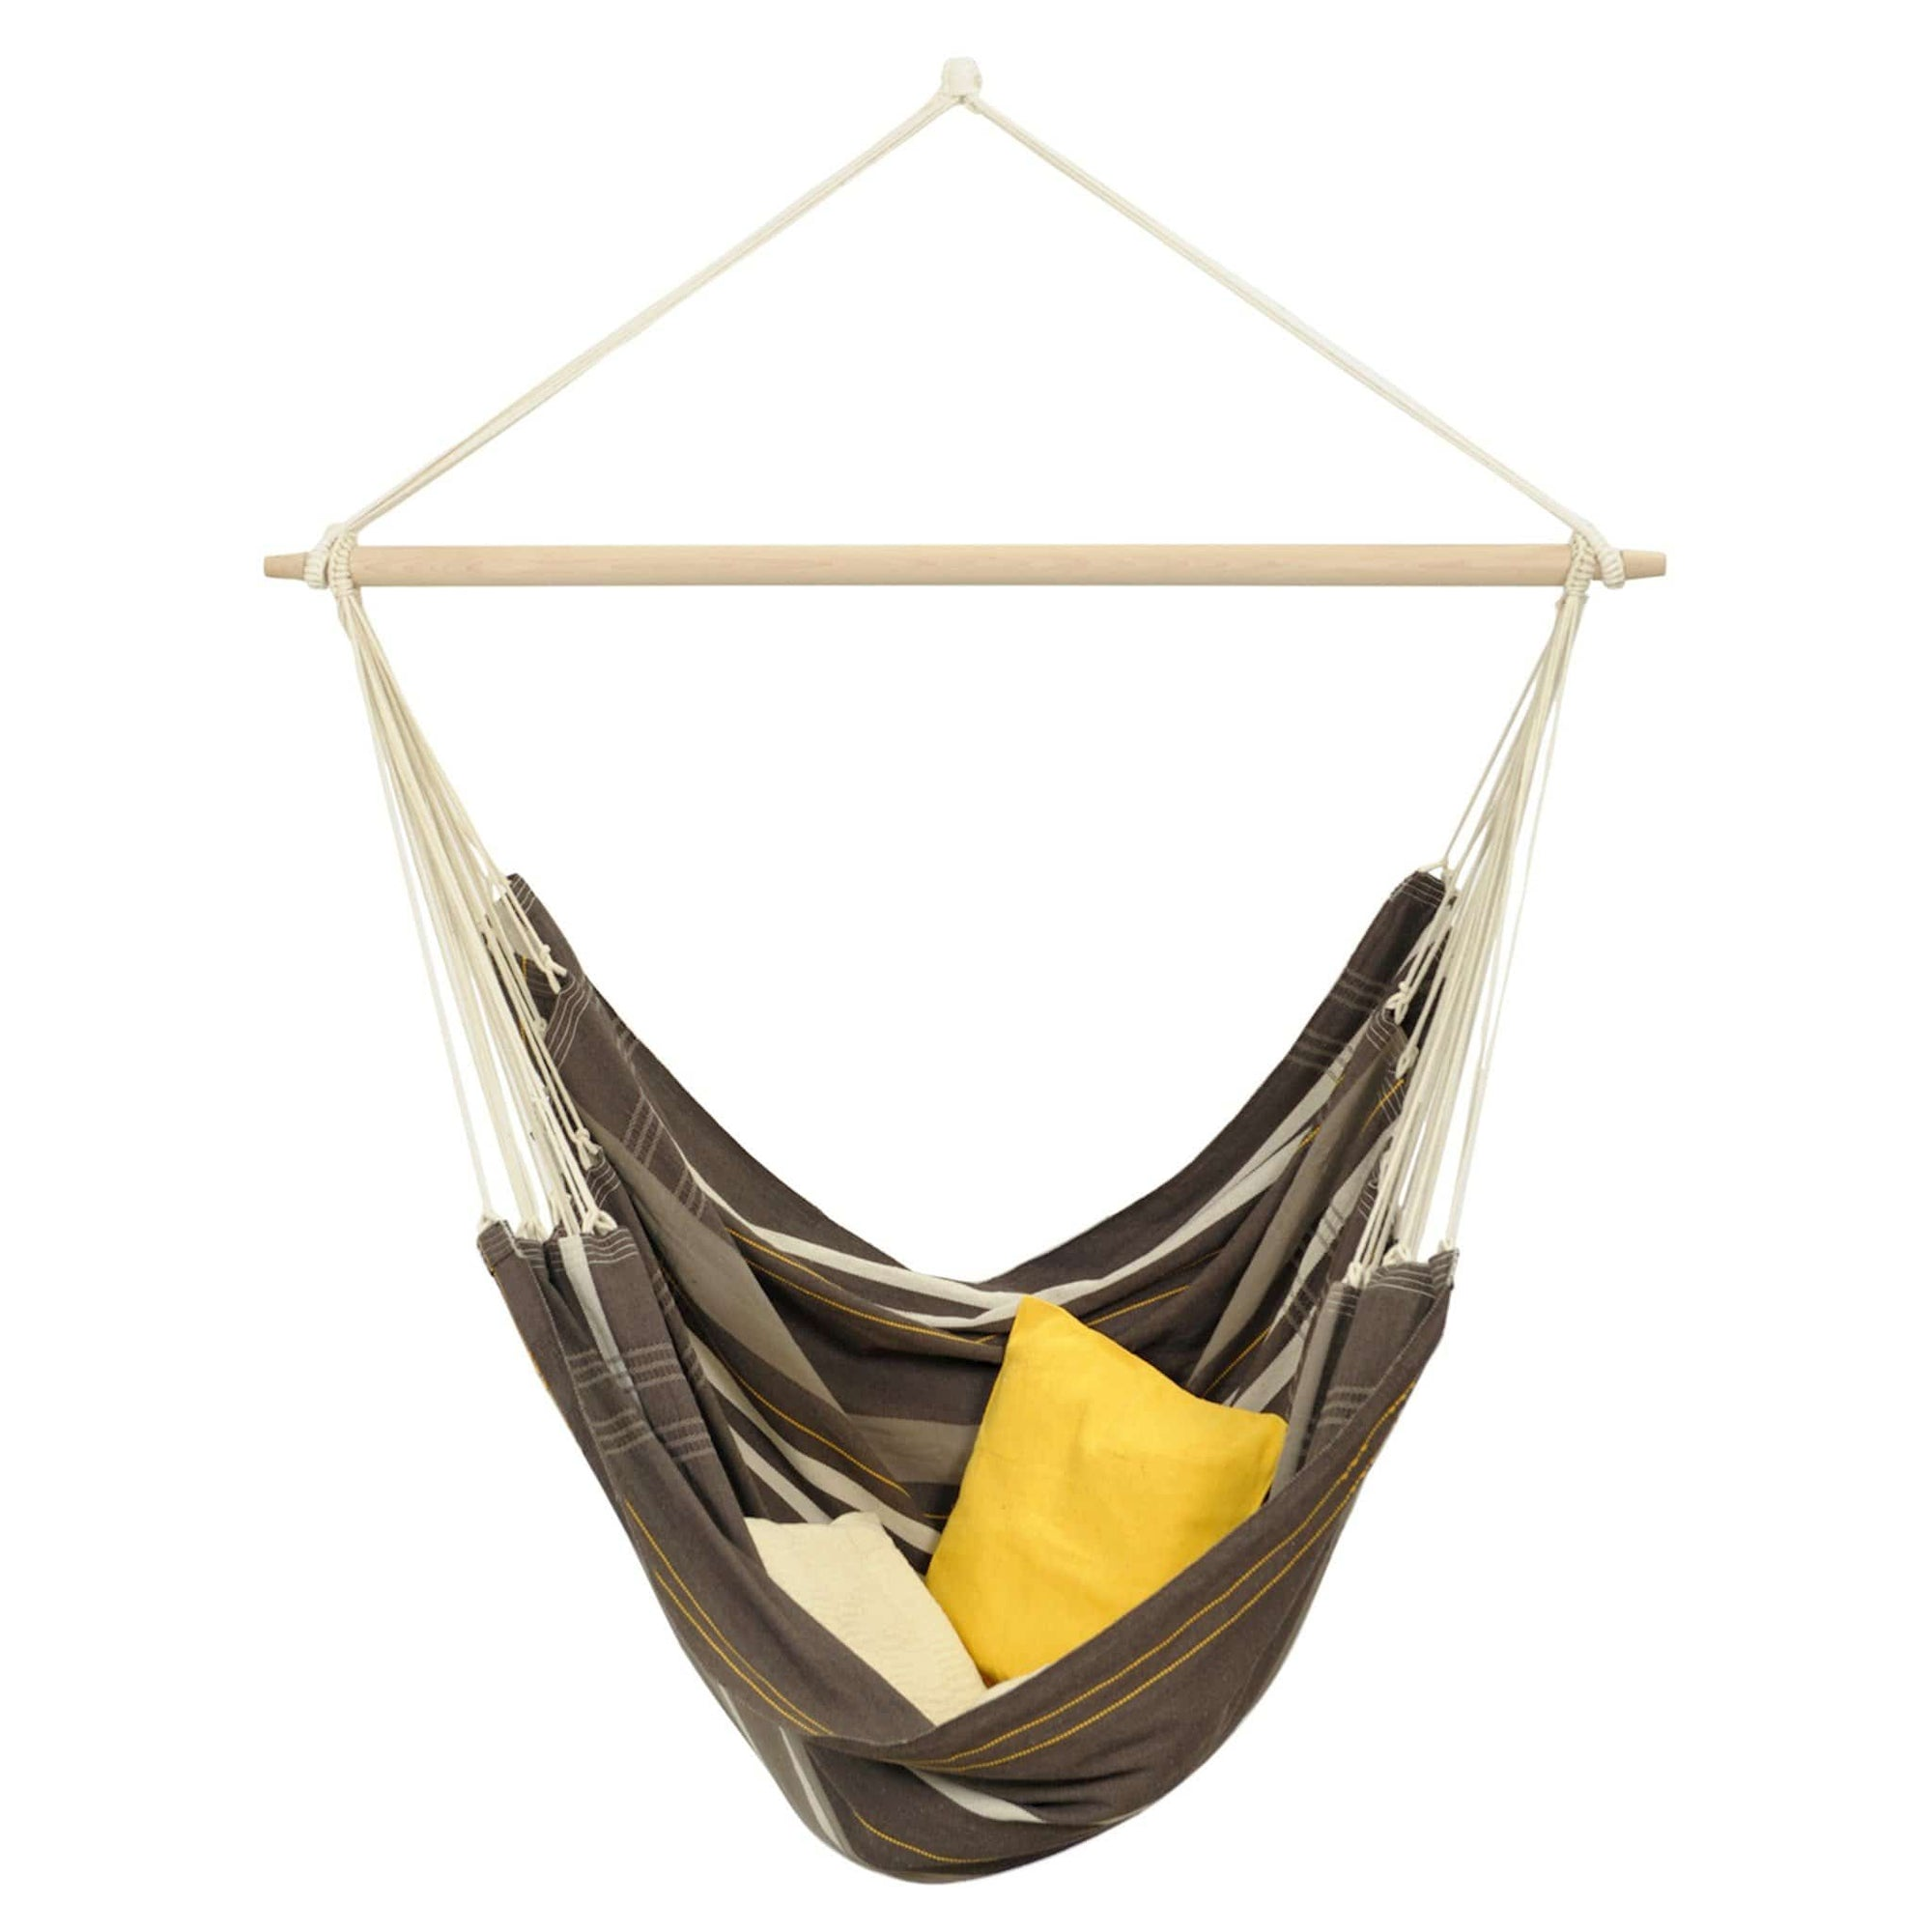 Amazonas Hammock Chair Cafe Brasil Gigante Hammock Chair